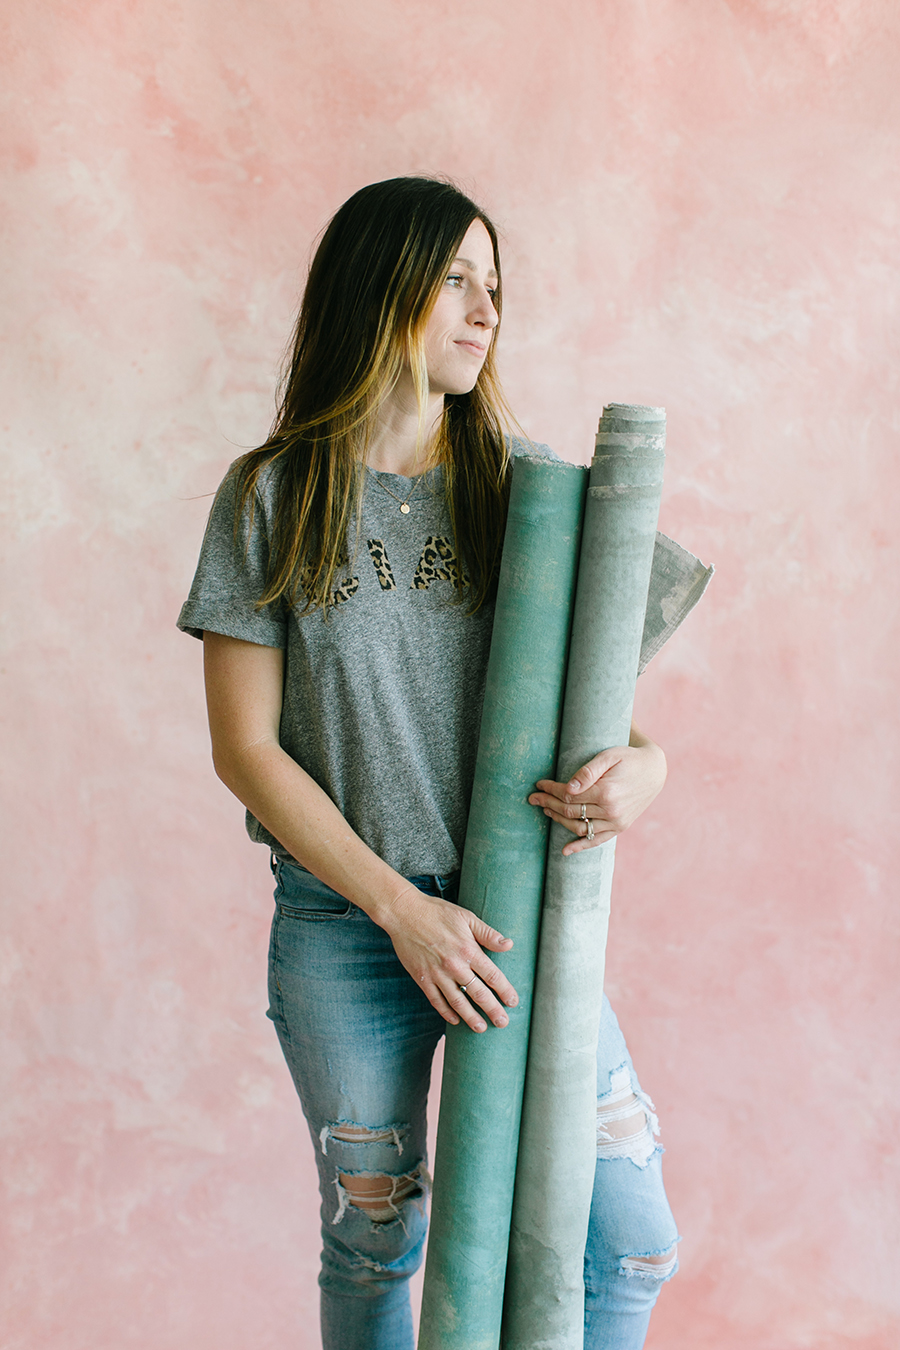 painter standng in front of pink custom painted backrop holding grey rolled backdrops in rentable white studio in pleasanton ca.jpg